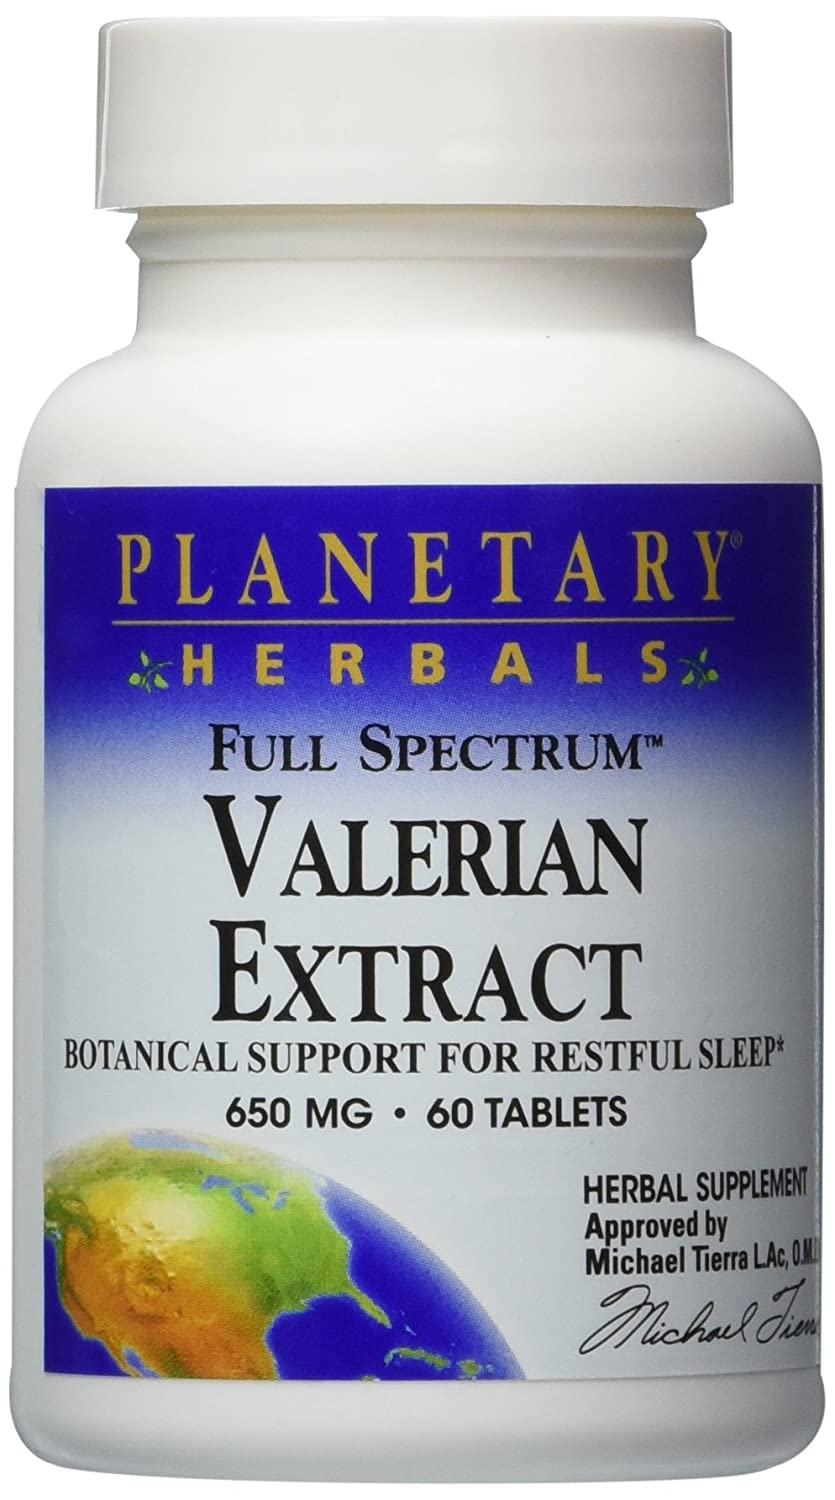 Buy herbal supplements 1000 count capsules - Amazon Com Planetary Herbals Full Spectrum Valerian Extract Tablets 650 Mg 60 Count Bottles Pack Of 2 Health Personal Care